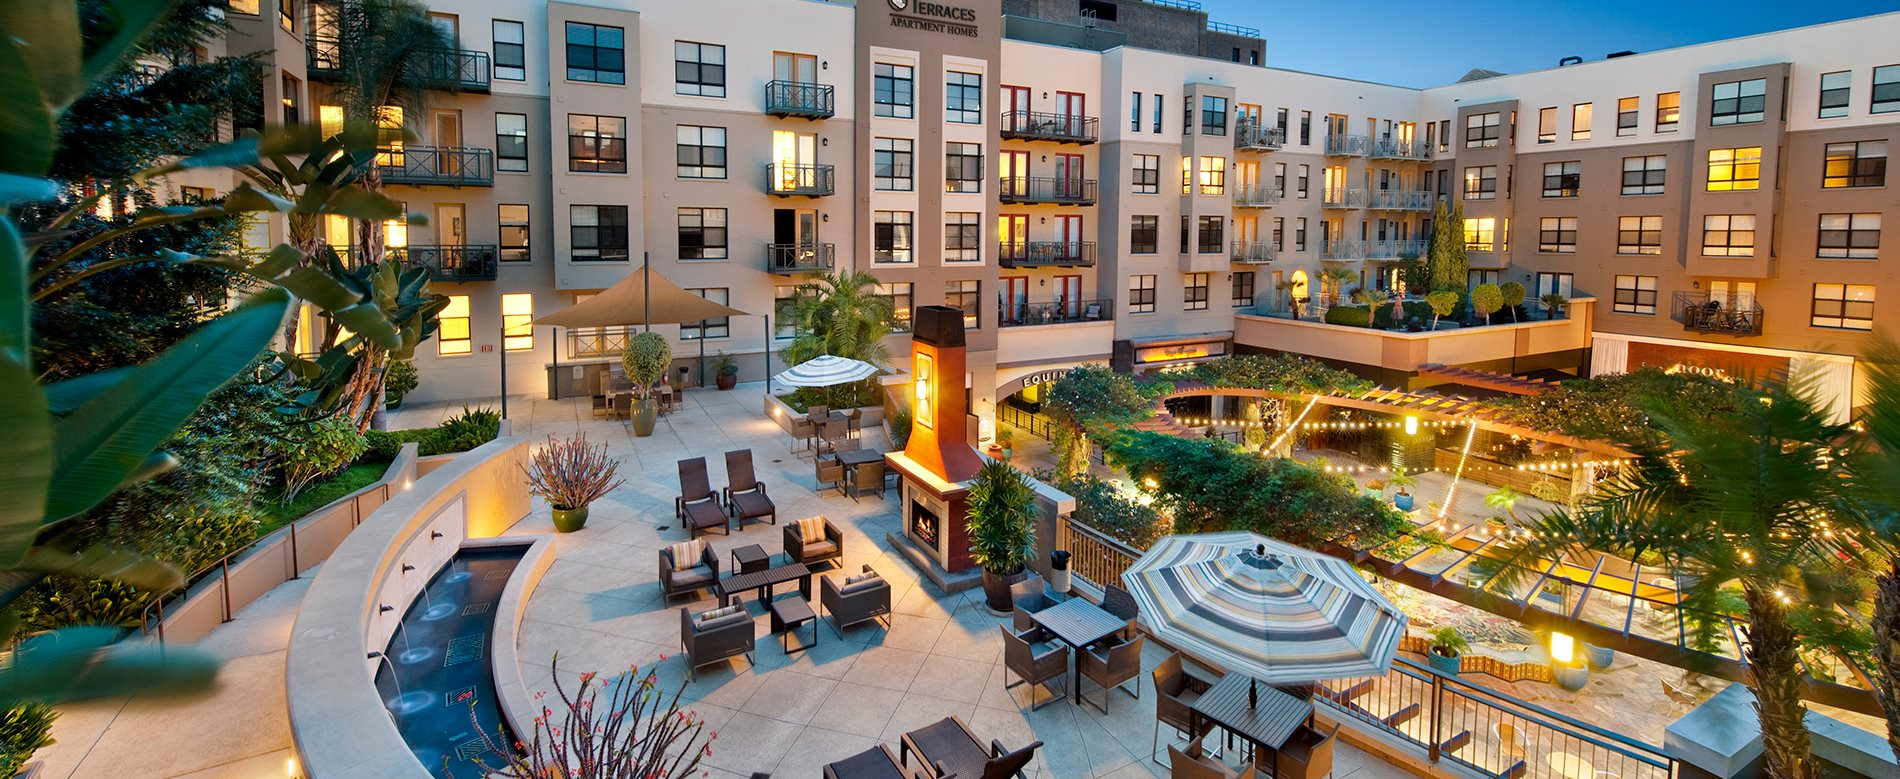 BBQ and Fireplace at Terraces at Paseo Colorado, has Outdoor Terraces with BBQ and Fireplace at Terraces at Paseo Colorado, CA